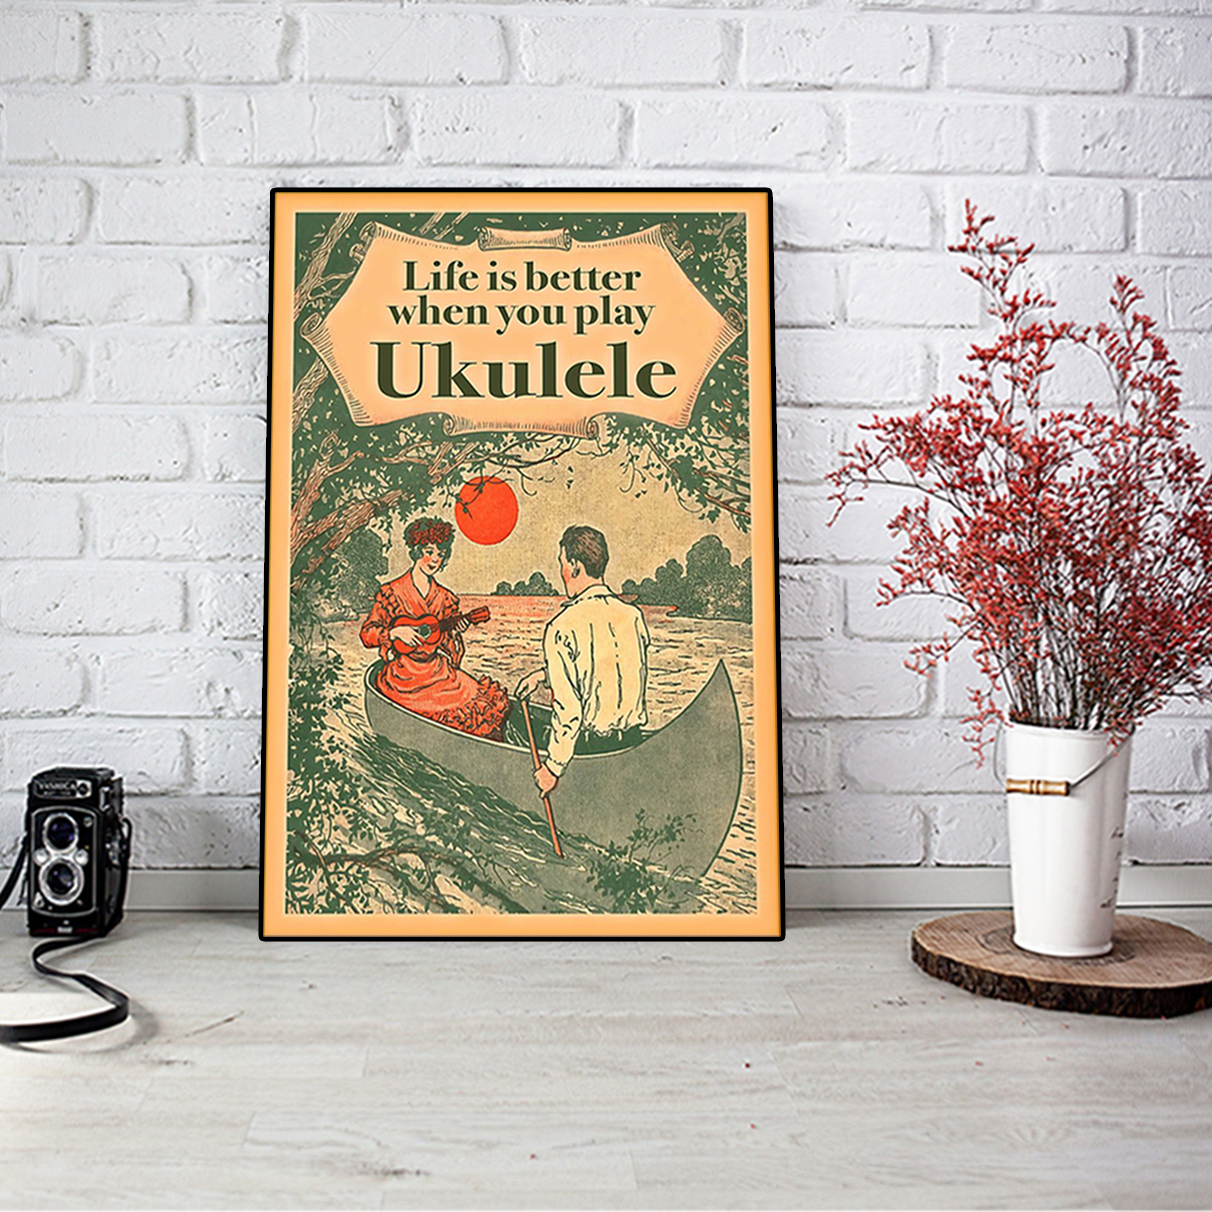 Life is better when you play ukulele poster A1